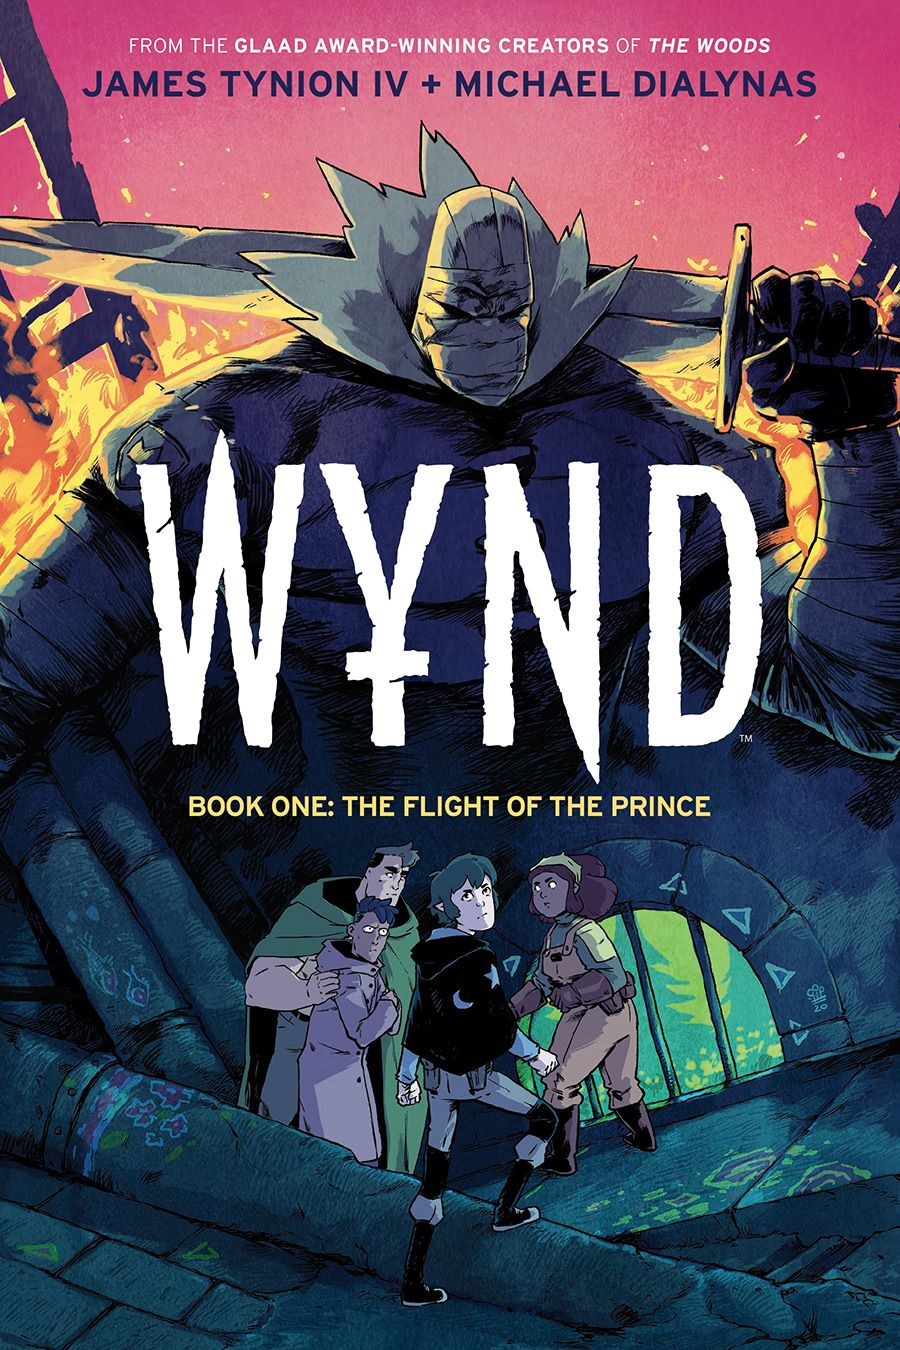 Wynd_v1_HC_Cover ComicList Previews: WYND VOLUME 1 THE FLIGHT OF THE PRINCE HC (COMIC BOOK SHOP EXCLUSIVE HARDCOVER EDITION)